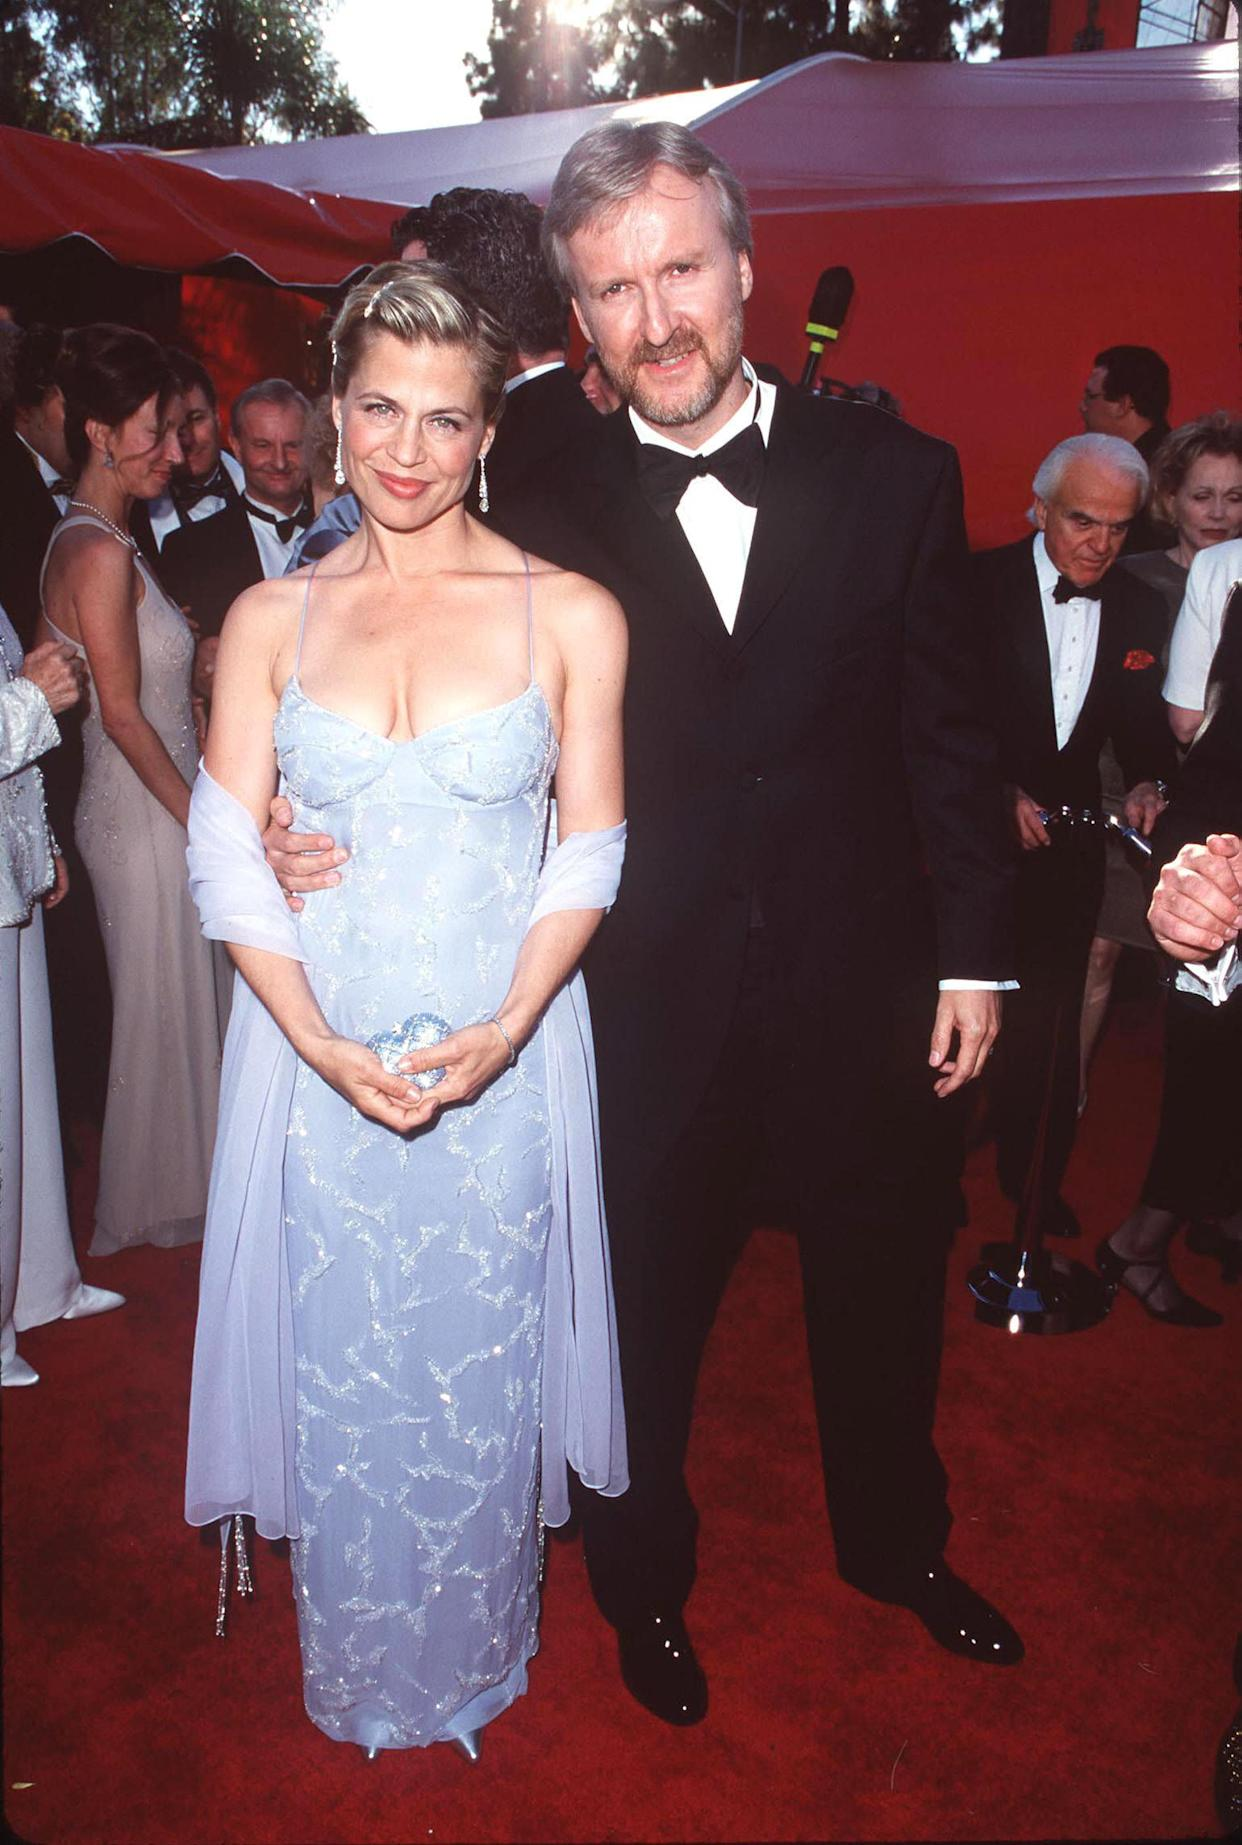 James Cameron and Linda Hamilton attend The 70th Annual Academy Awards together. (Photo: SGranitz via Getty Images)